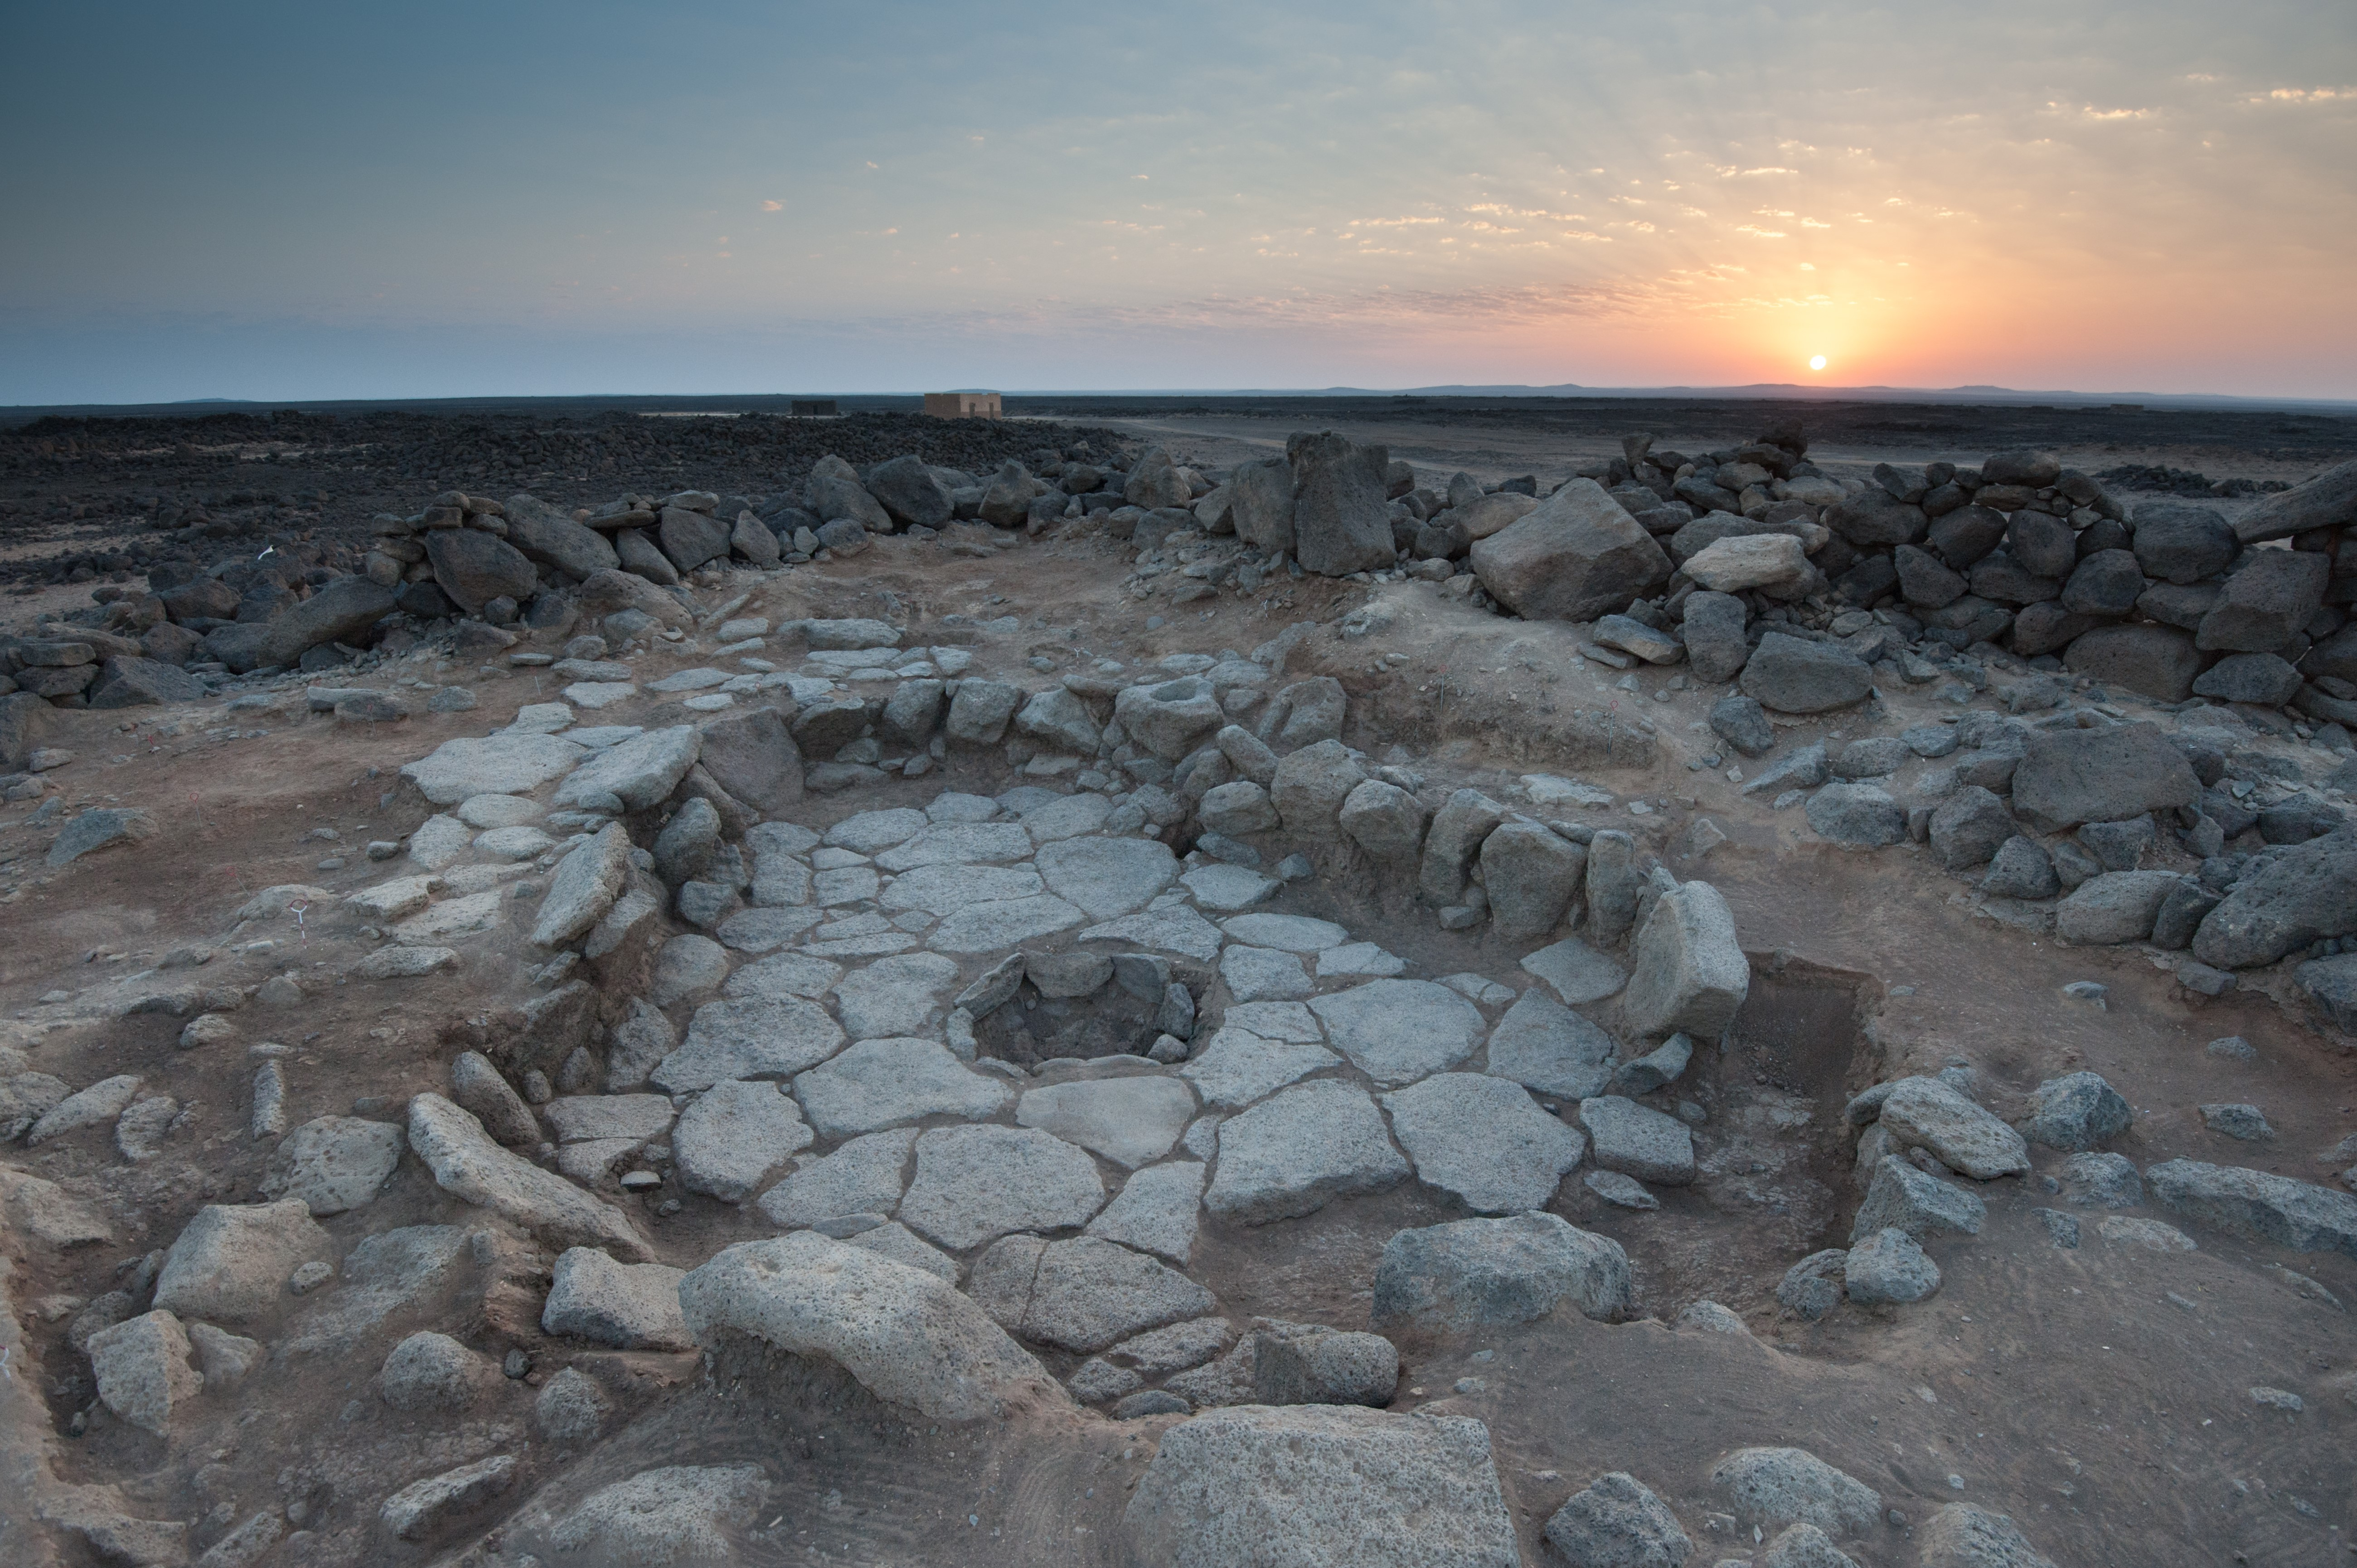 14,500 year old building at the Natufian site Shubayqa 1